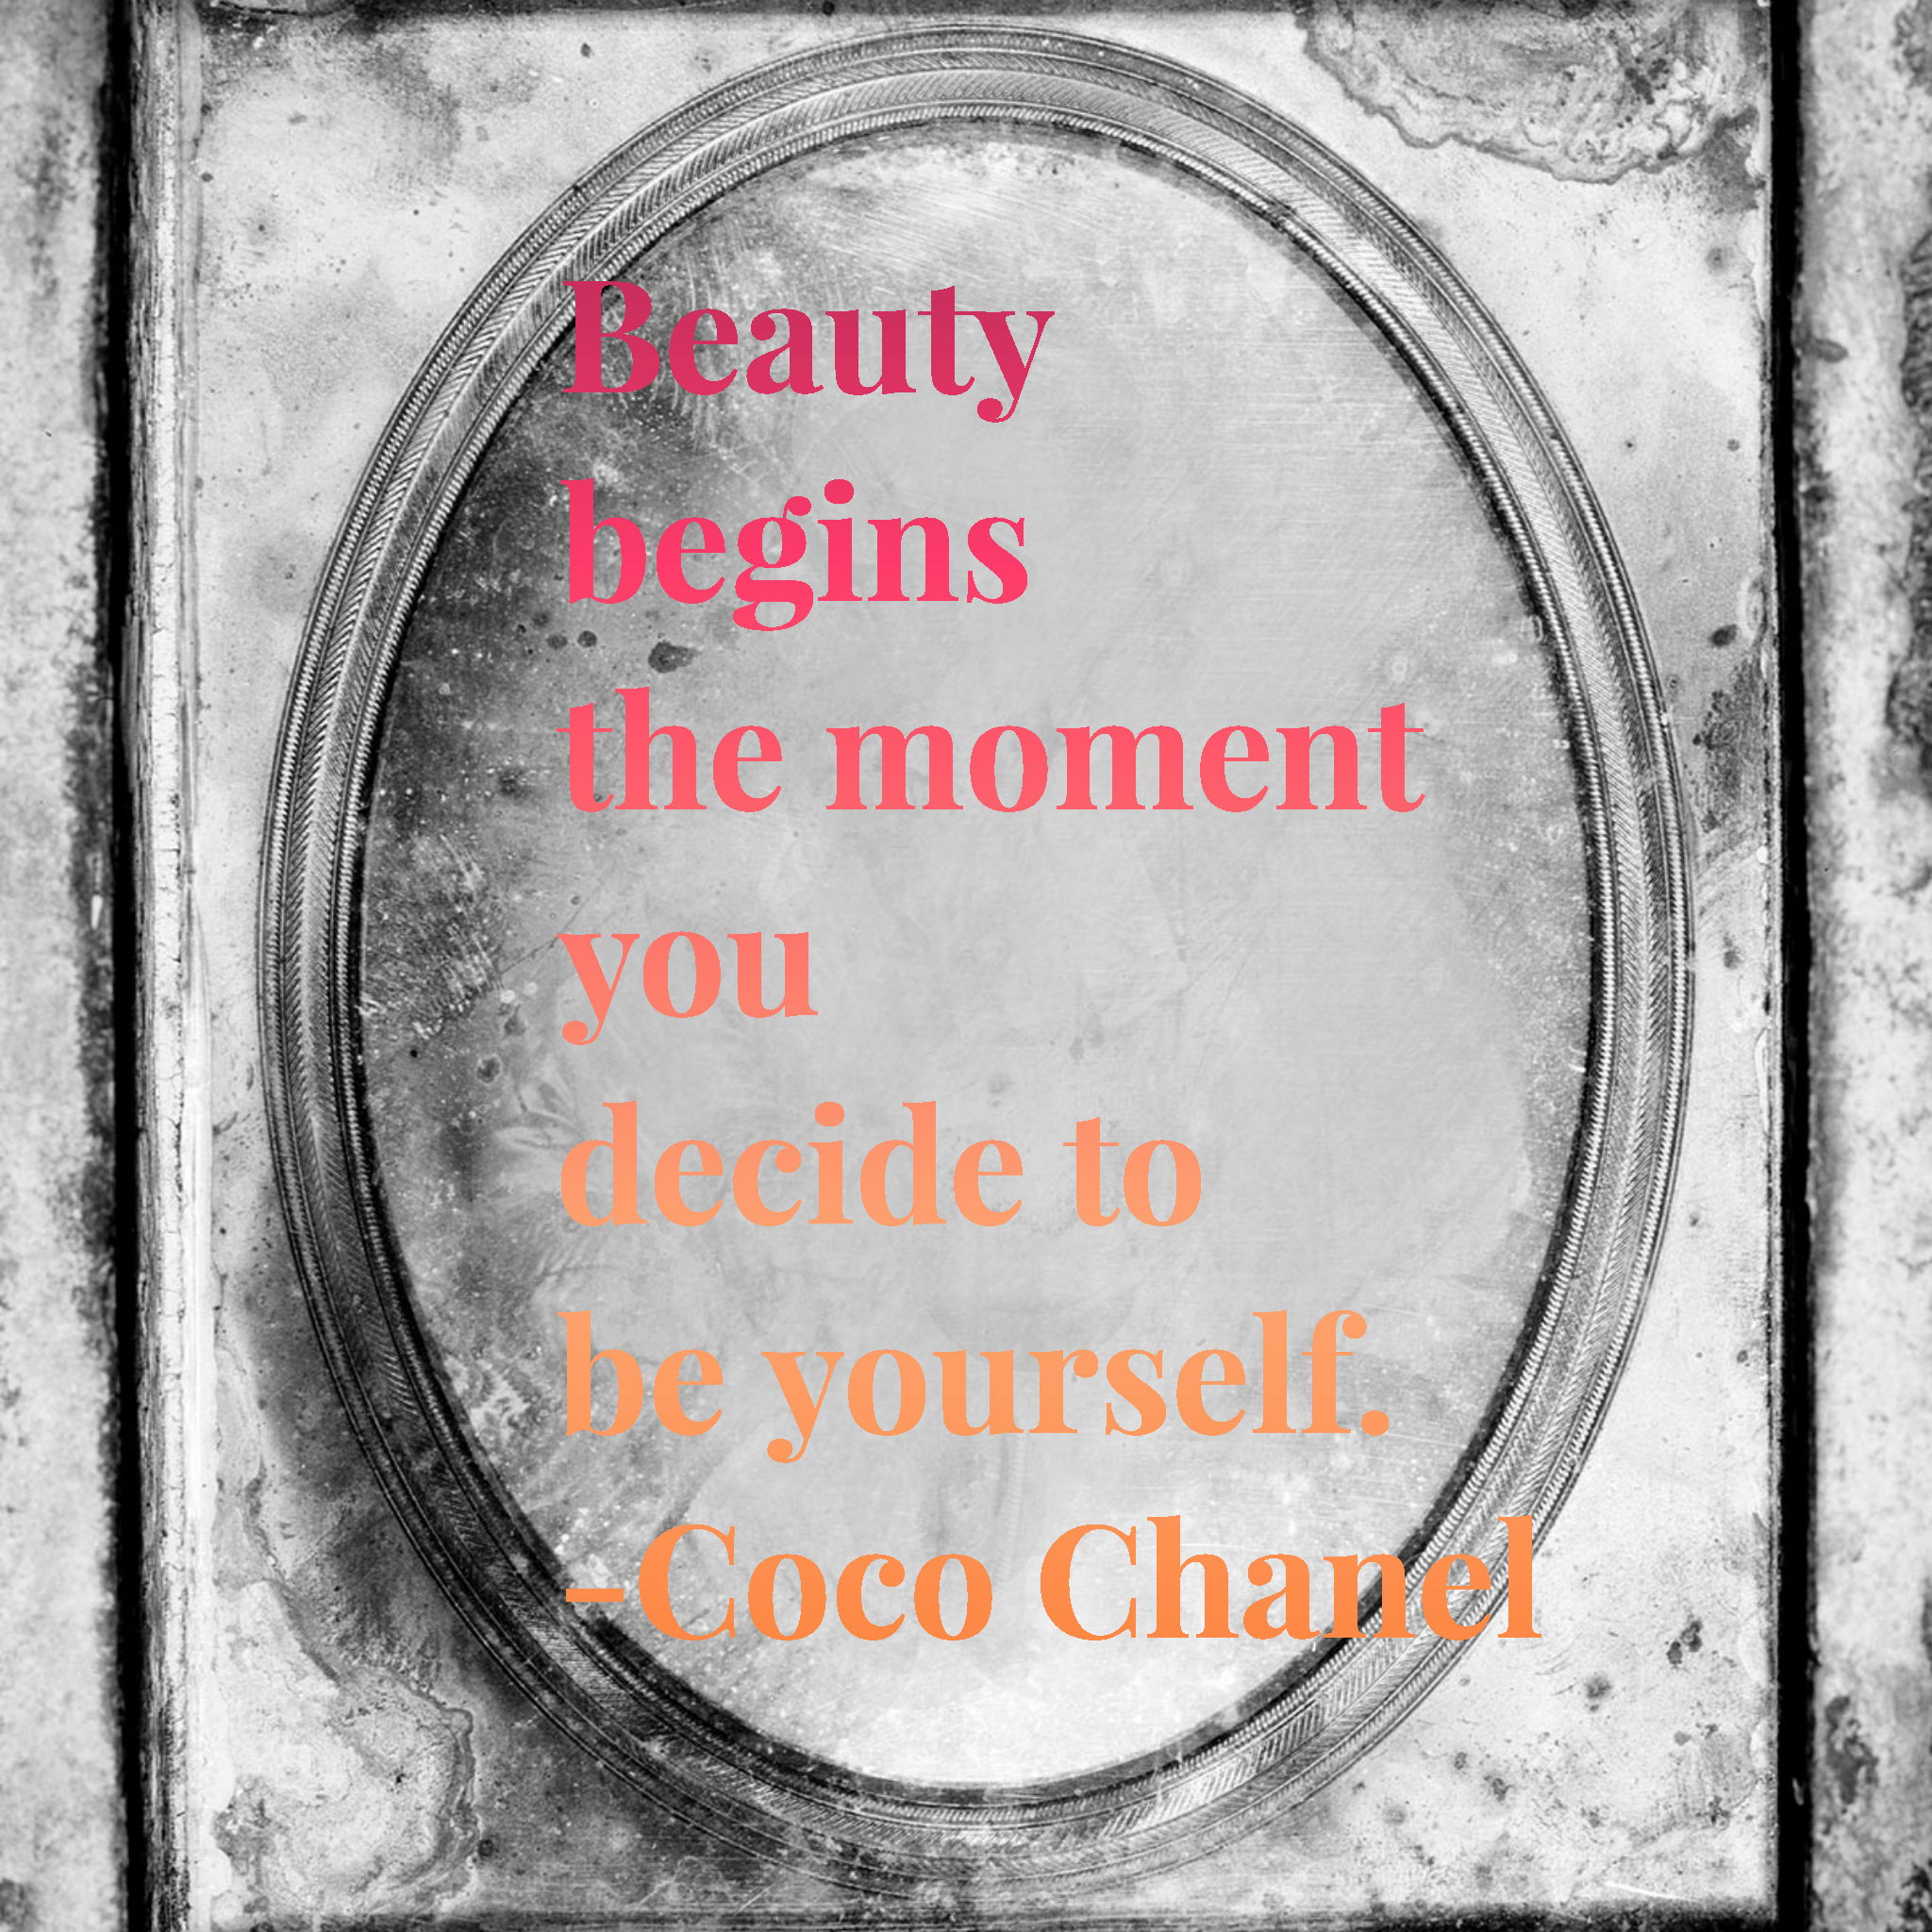 Beauty begins the moment you decide to be yourself.- Coco Chanel (Around 300ppi)